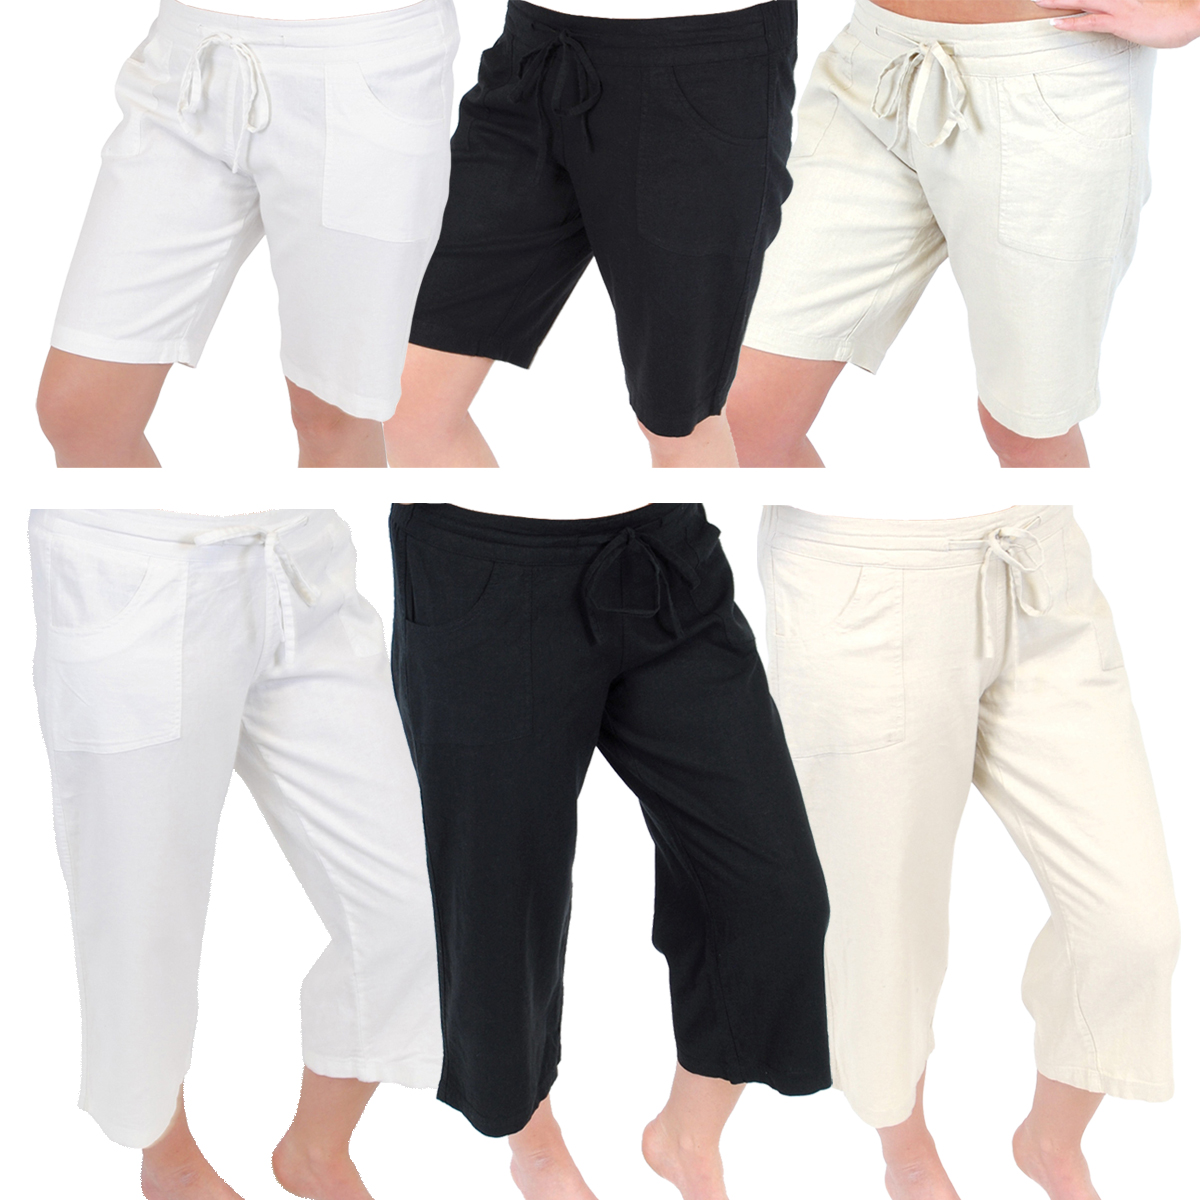 Awesome Summer Womens Medium Length Pants Soft Cotton Cargo Shorts Relax Fit